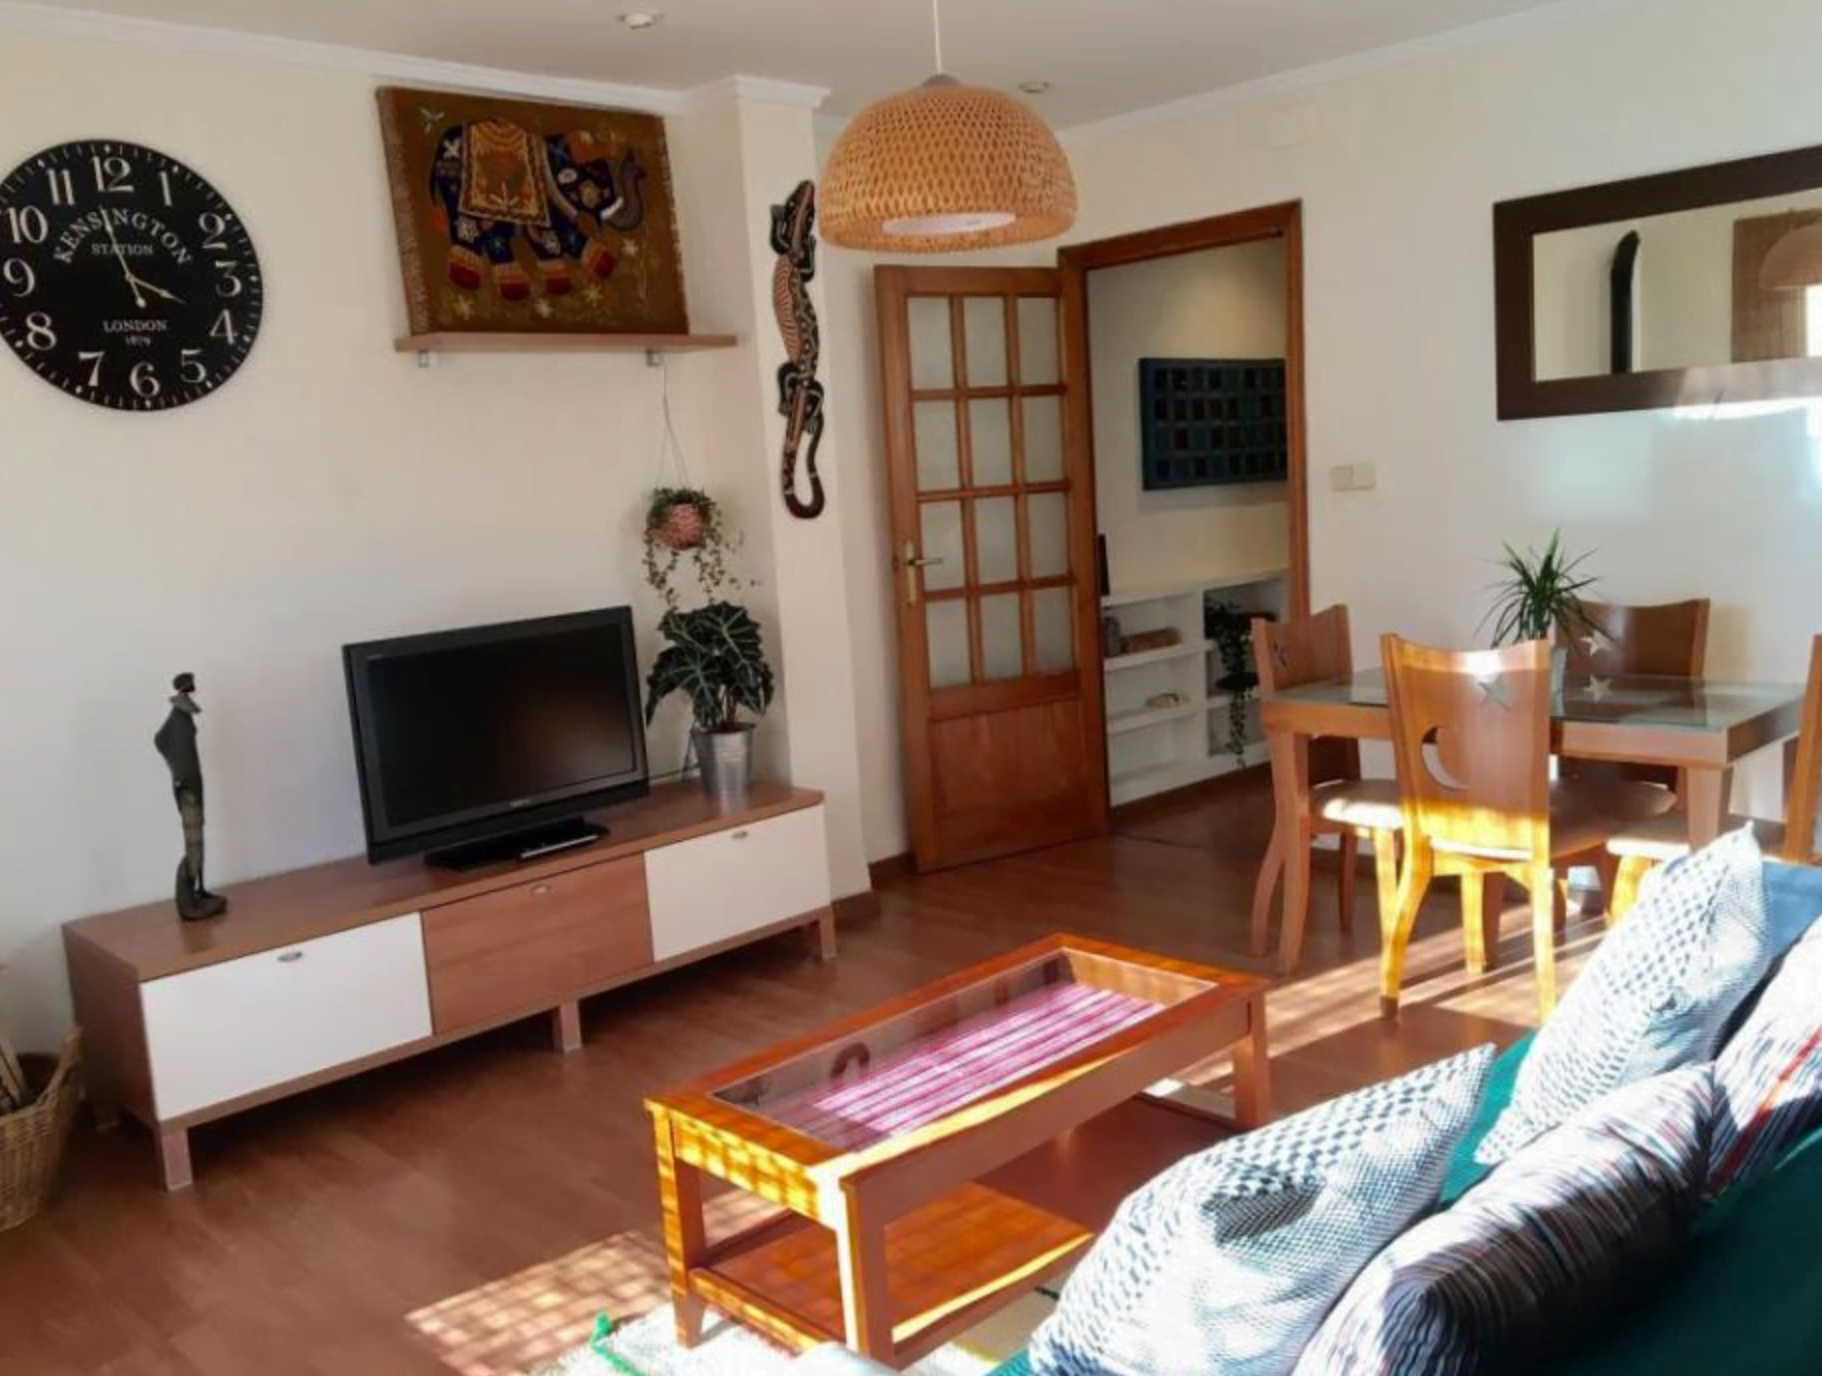 Mosen - Expat flat with terrace in Valencia